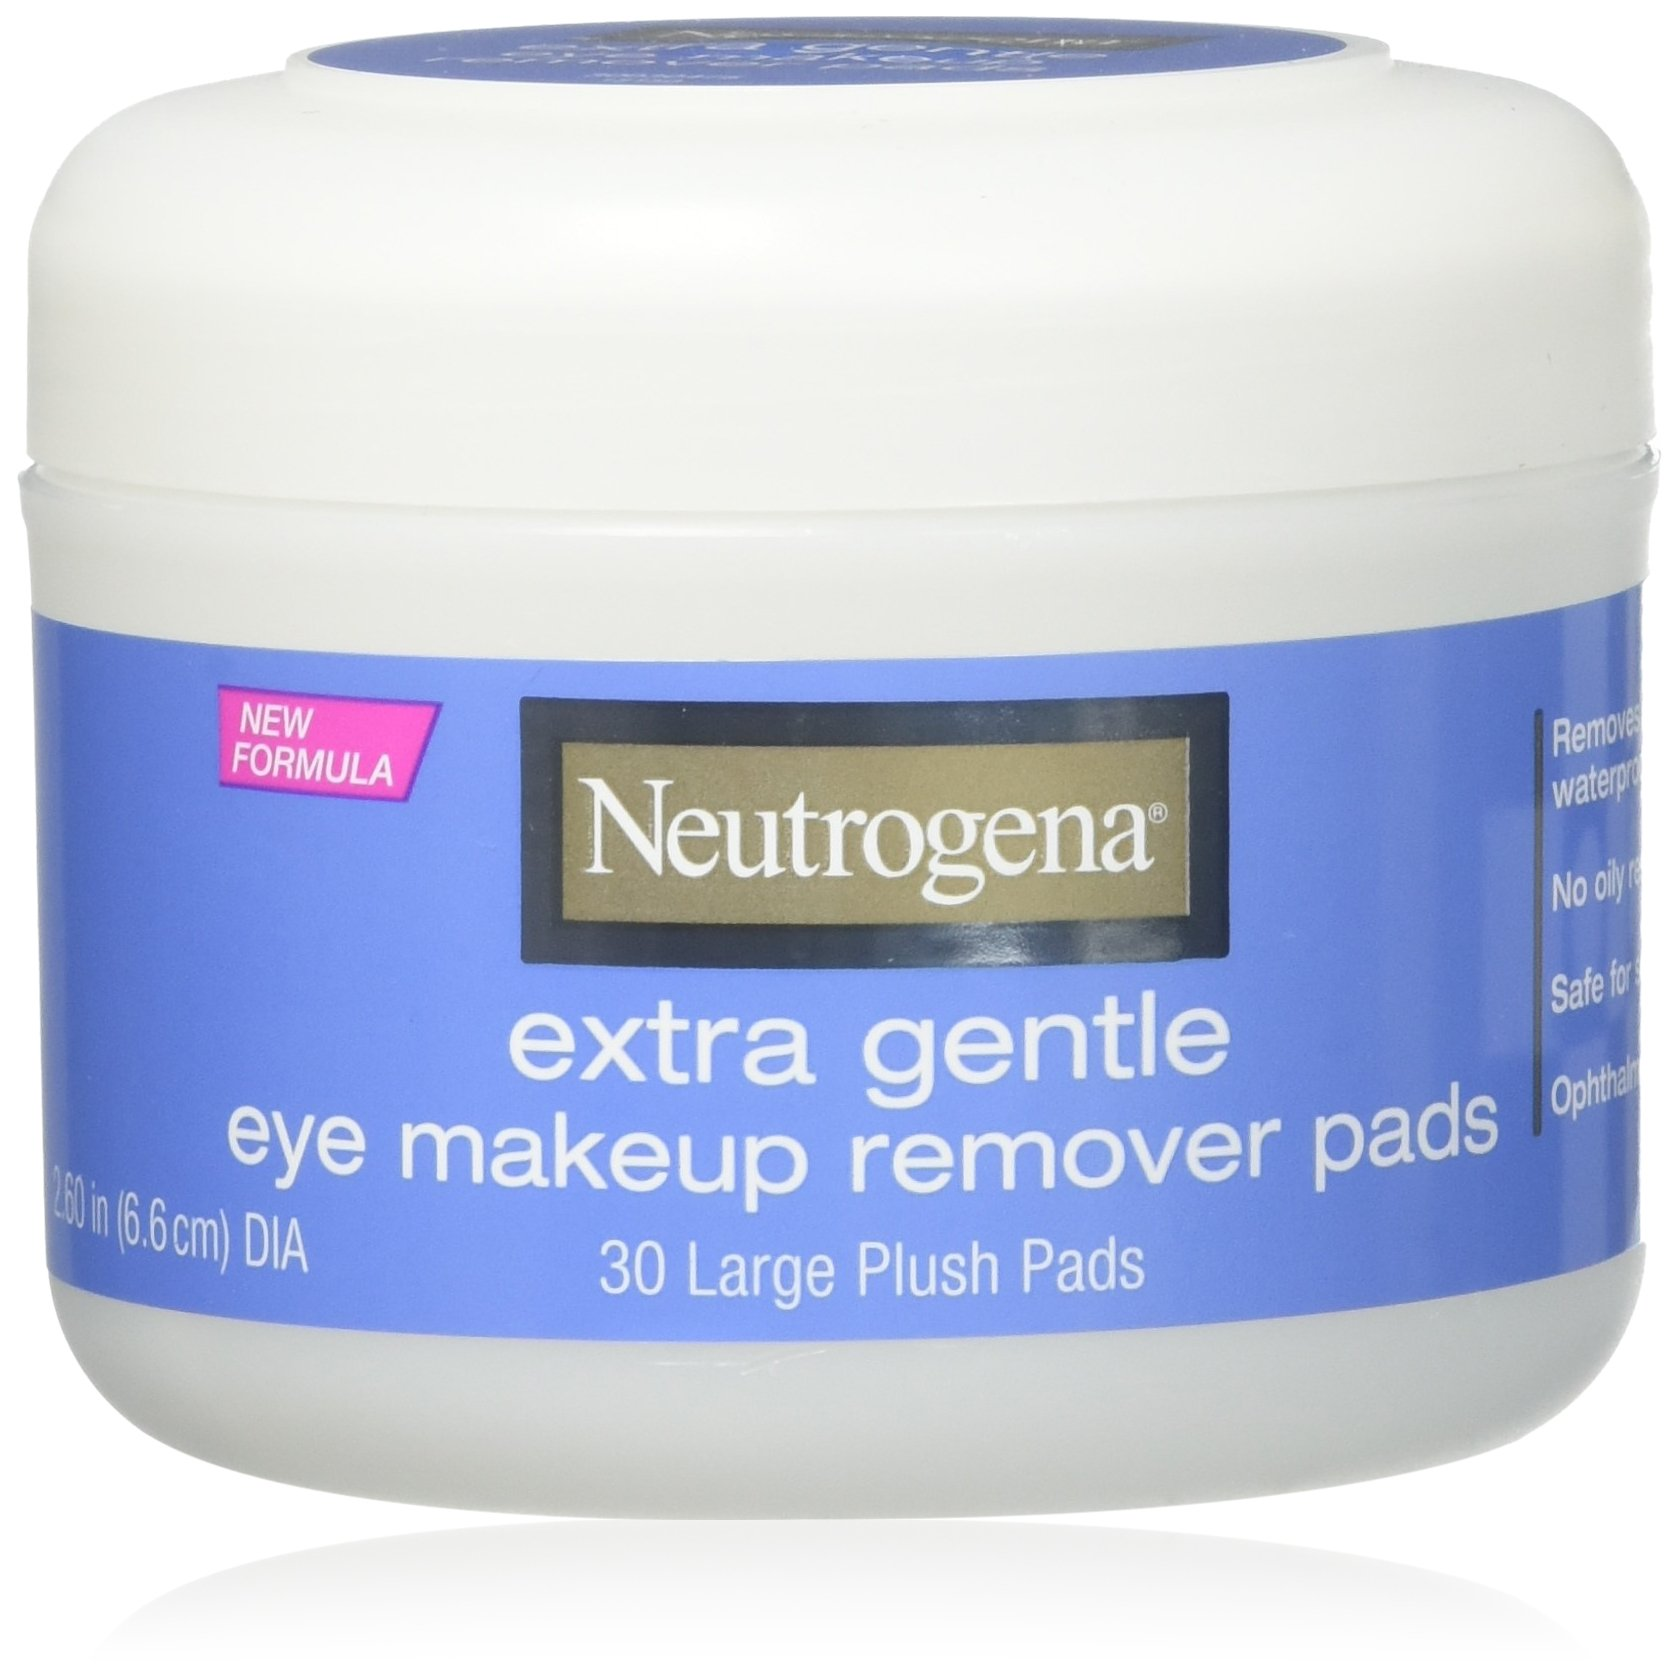 Neutrogena Eye Extra Gentle Makeup Remover Pads 30 Count Jar (6 Pack) by Neutrogena